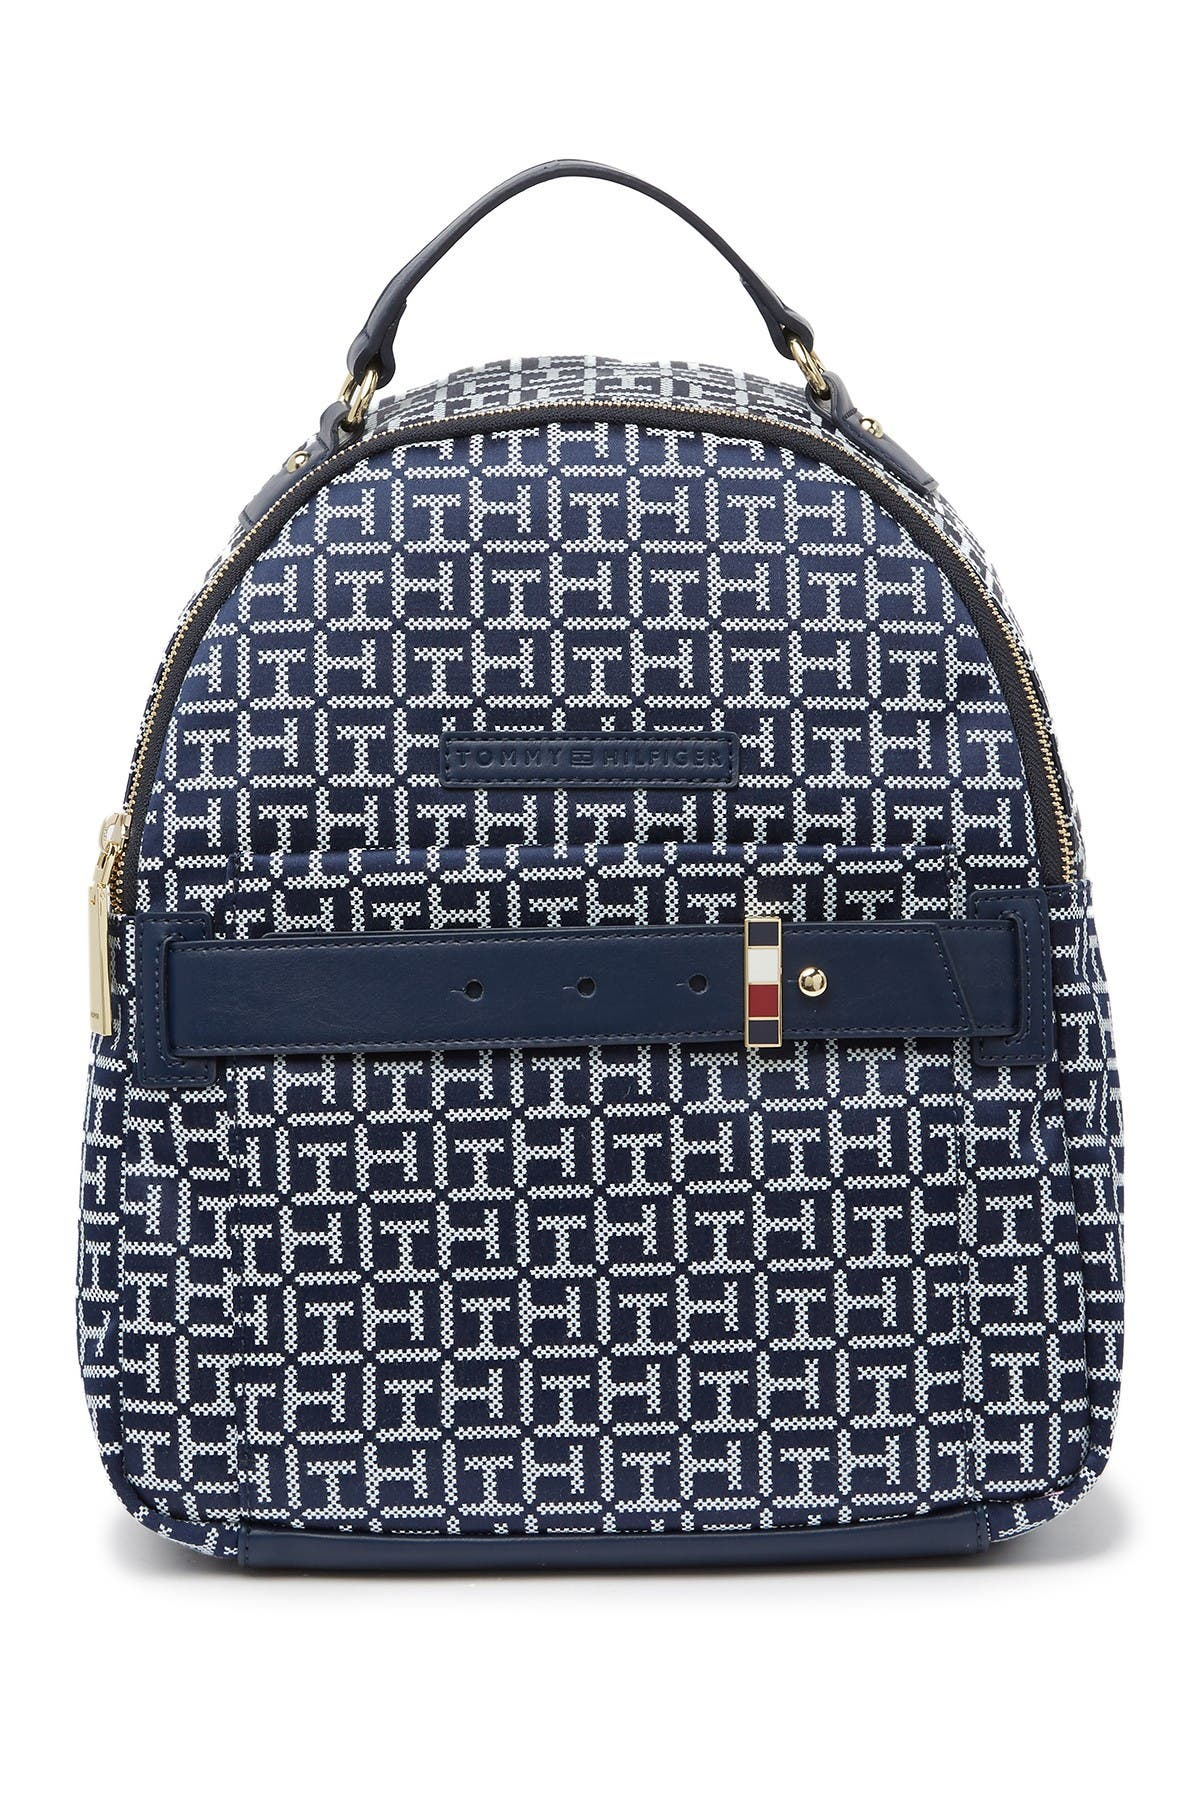 Image of Tommy Hilfiger Emilia Dome Mono Jacquard Backpack